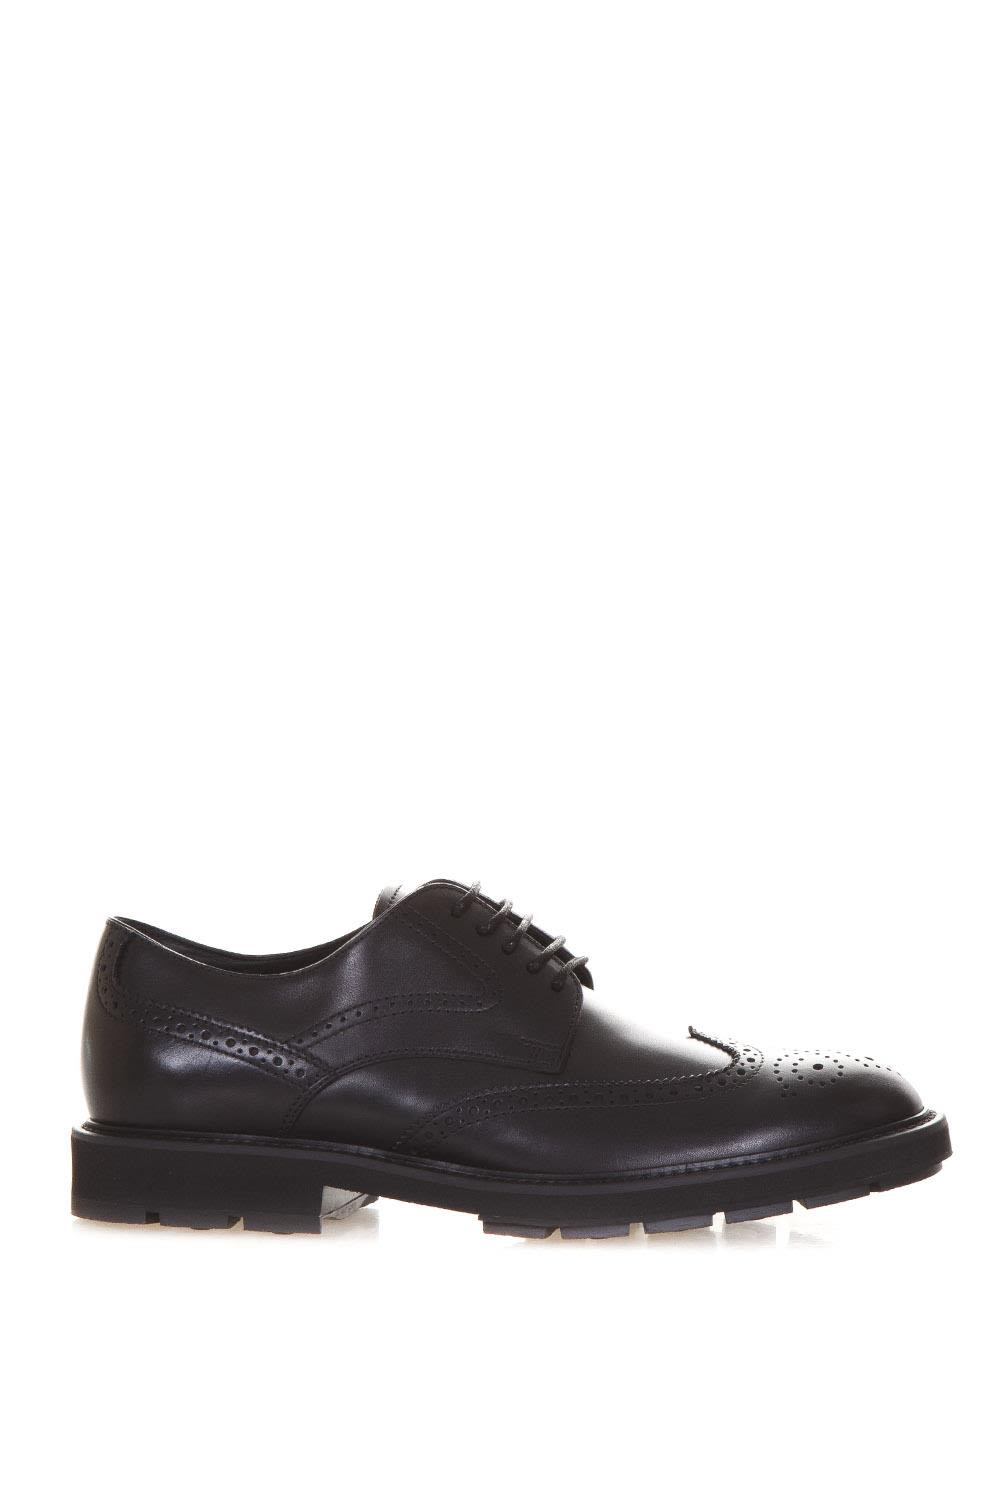 Tods Calf Leather Brogue Lace-up Shoes